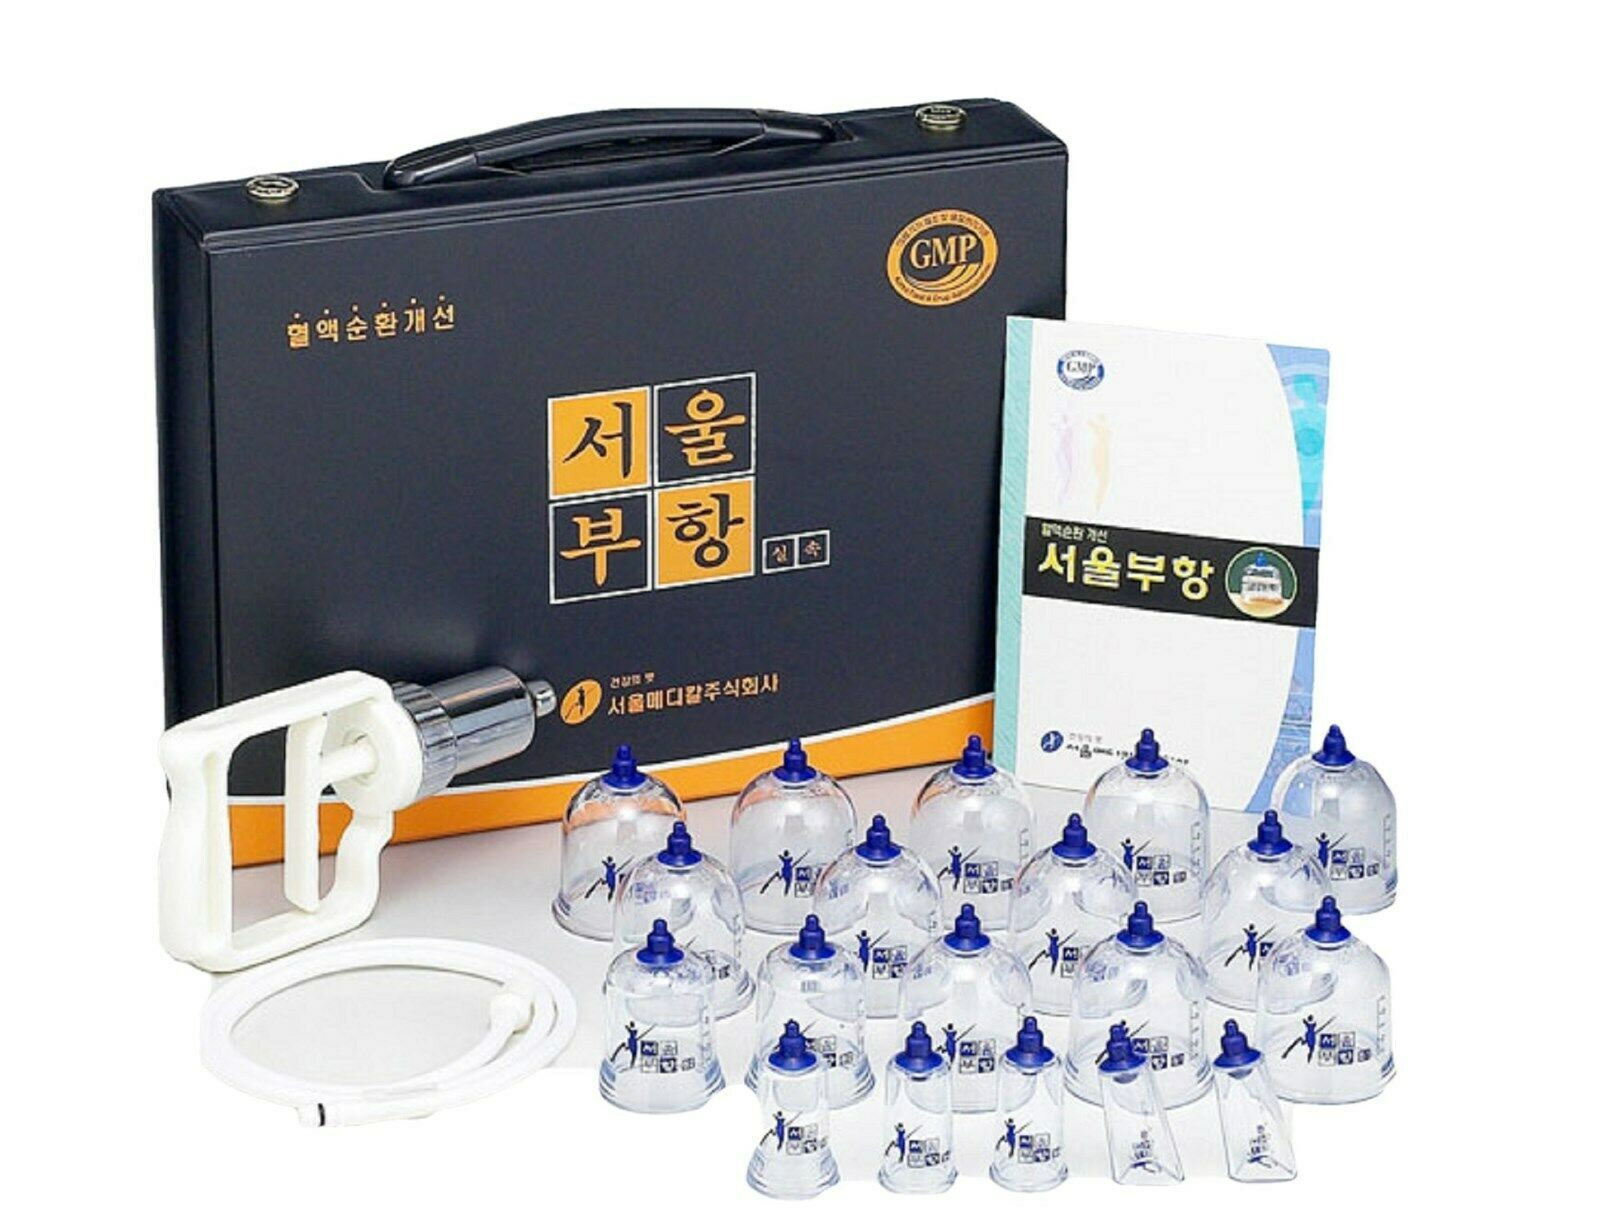 SeoulMedical Cupping Therapy Equipment 19 Cups Beginner Set with Pumping Handle